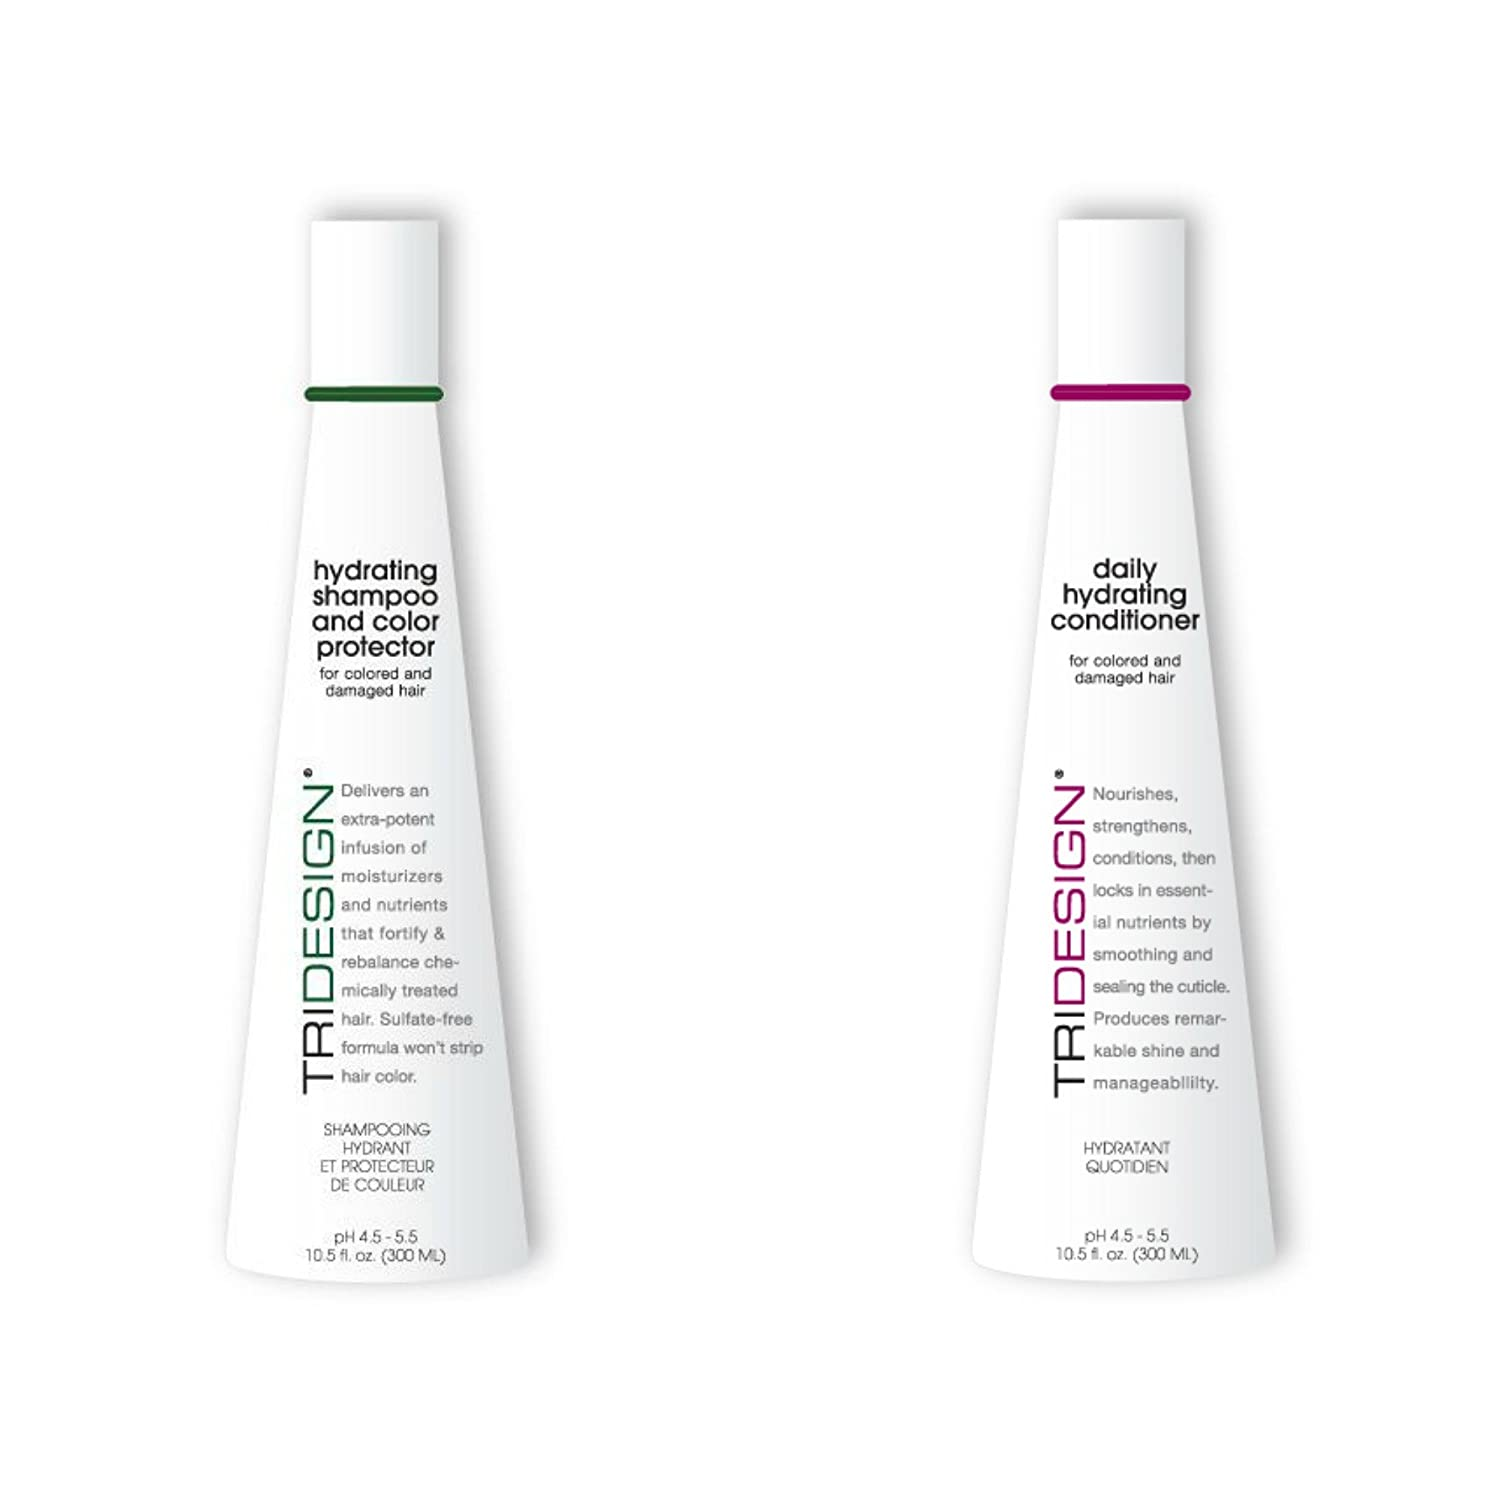 TRI Hydrating Shampoo and Color Protector and Daily Hydrating Conditioner 10.5 oz. Set